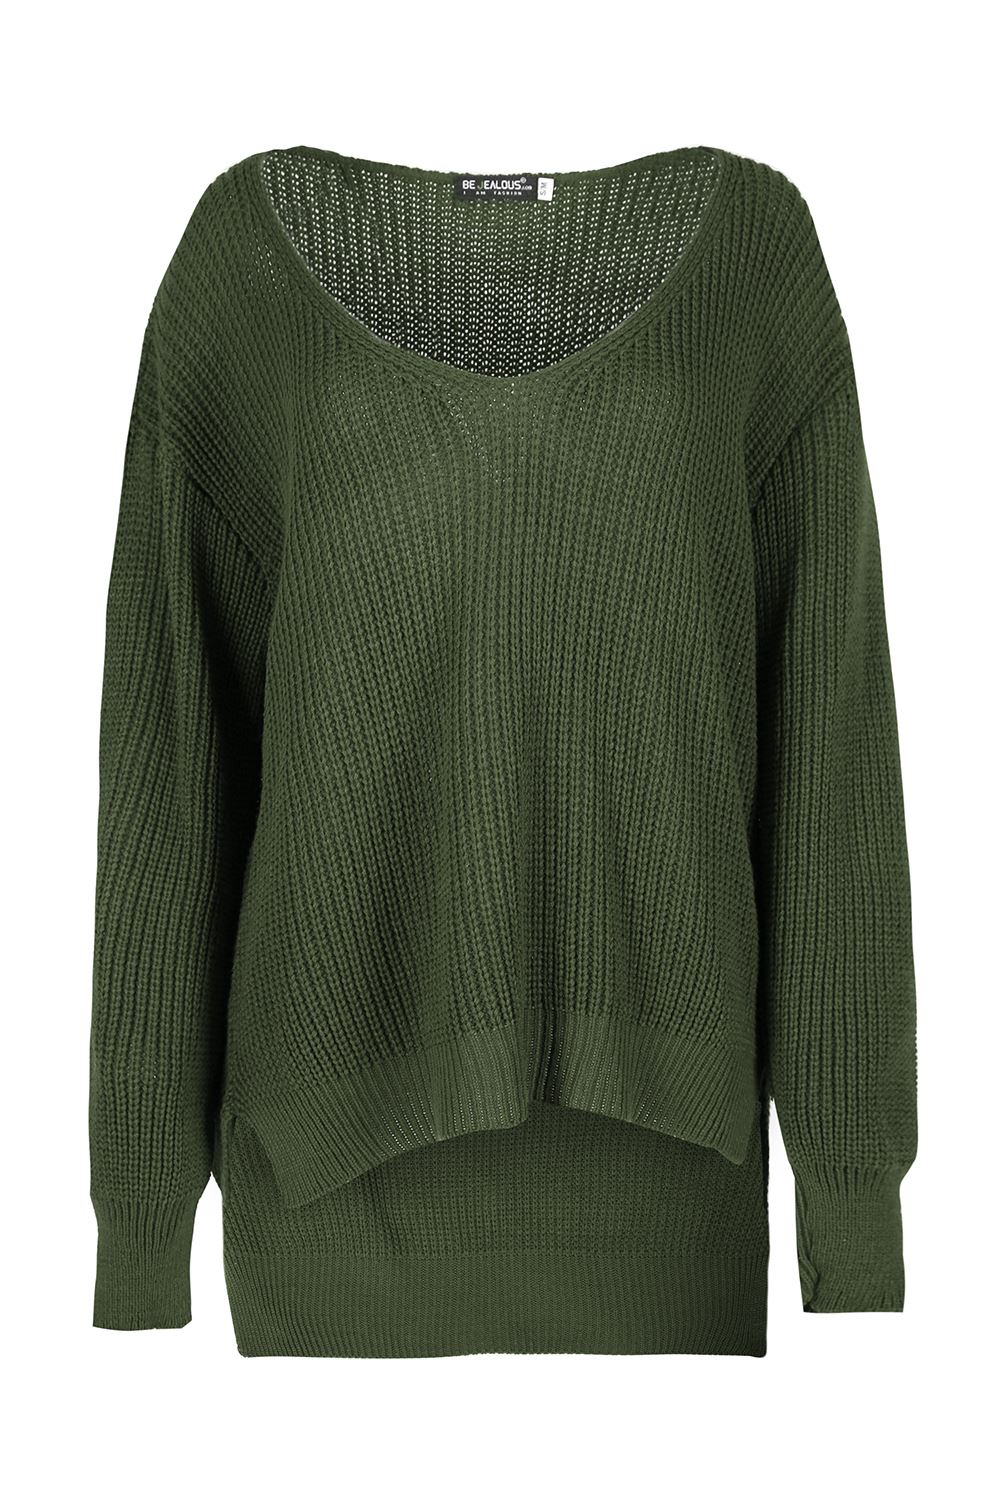 Ample pour dames tricot grosse maille col v profond paule d nud e pull over - Tricot grosse maille ...